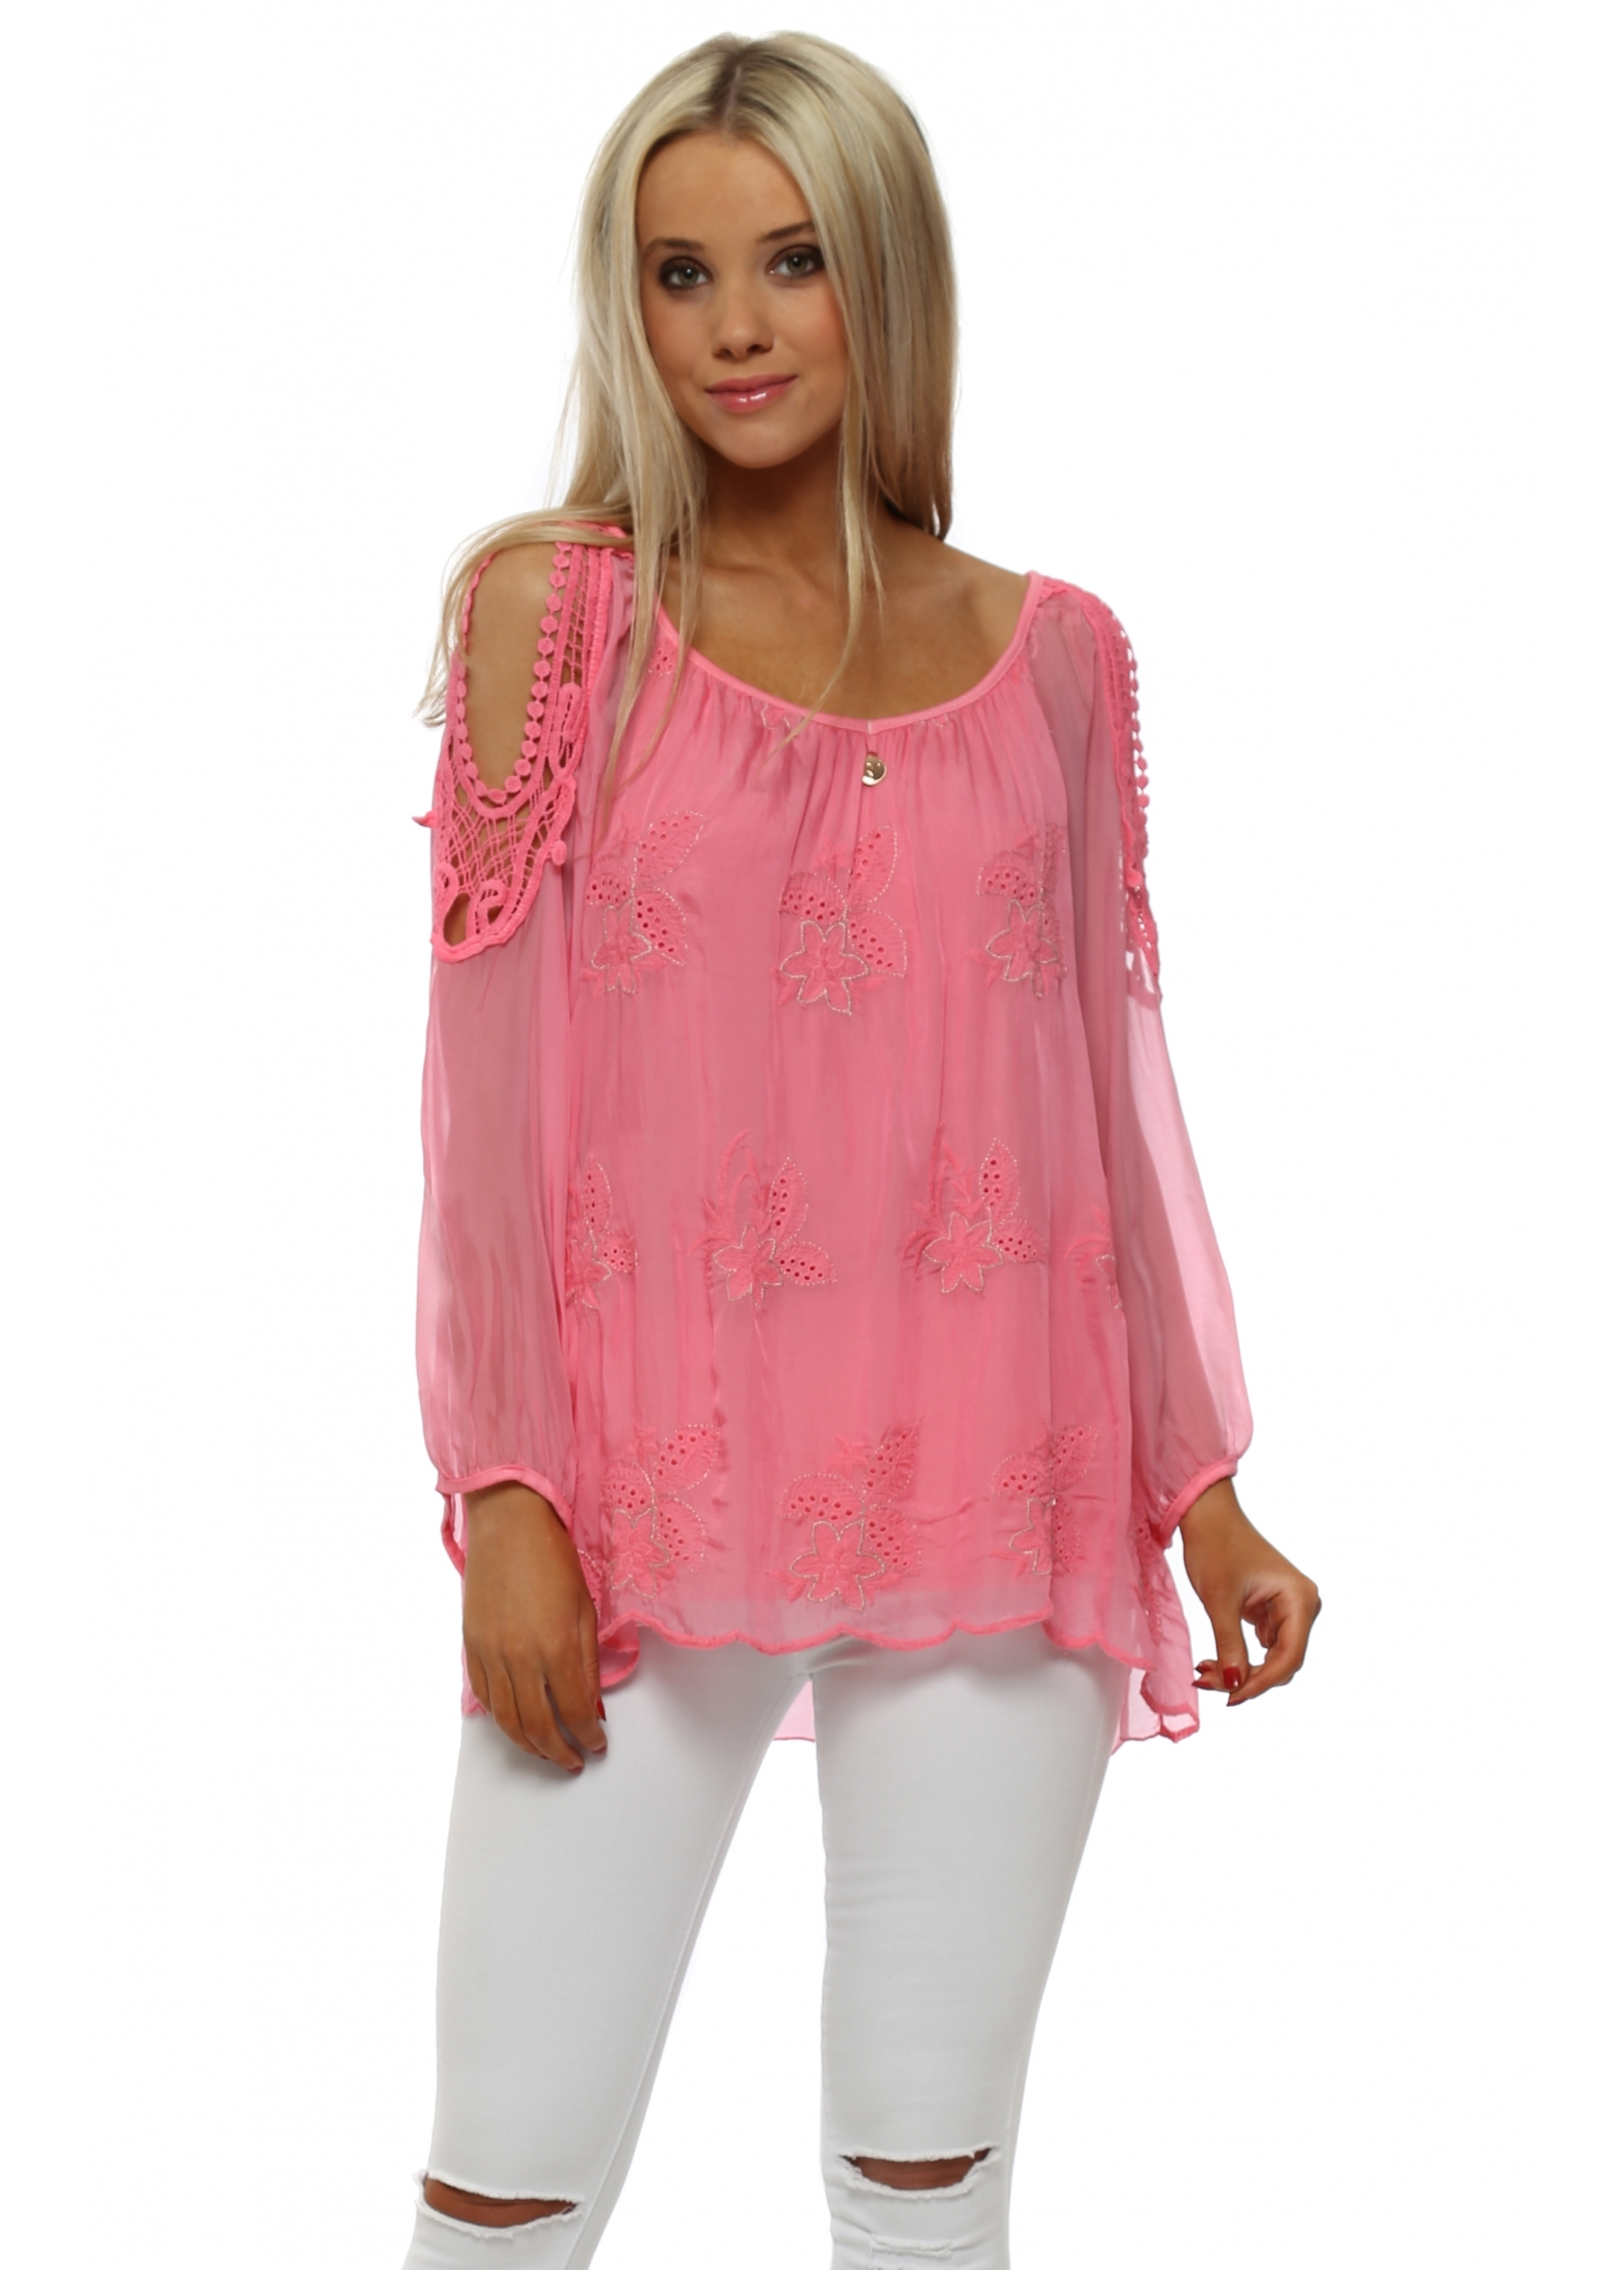 Diamante Fashion Womens Top (Sizing: S-L) · Style D187